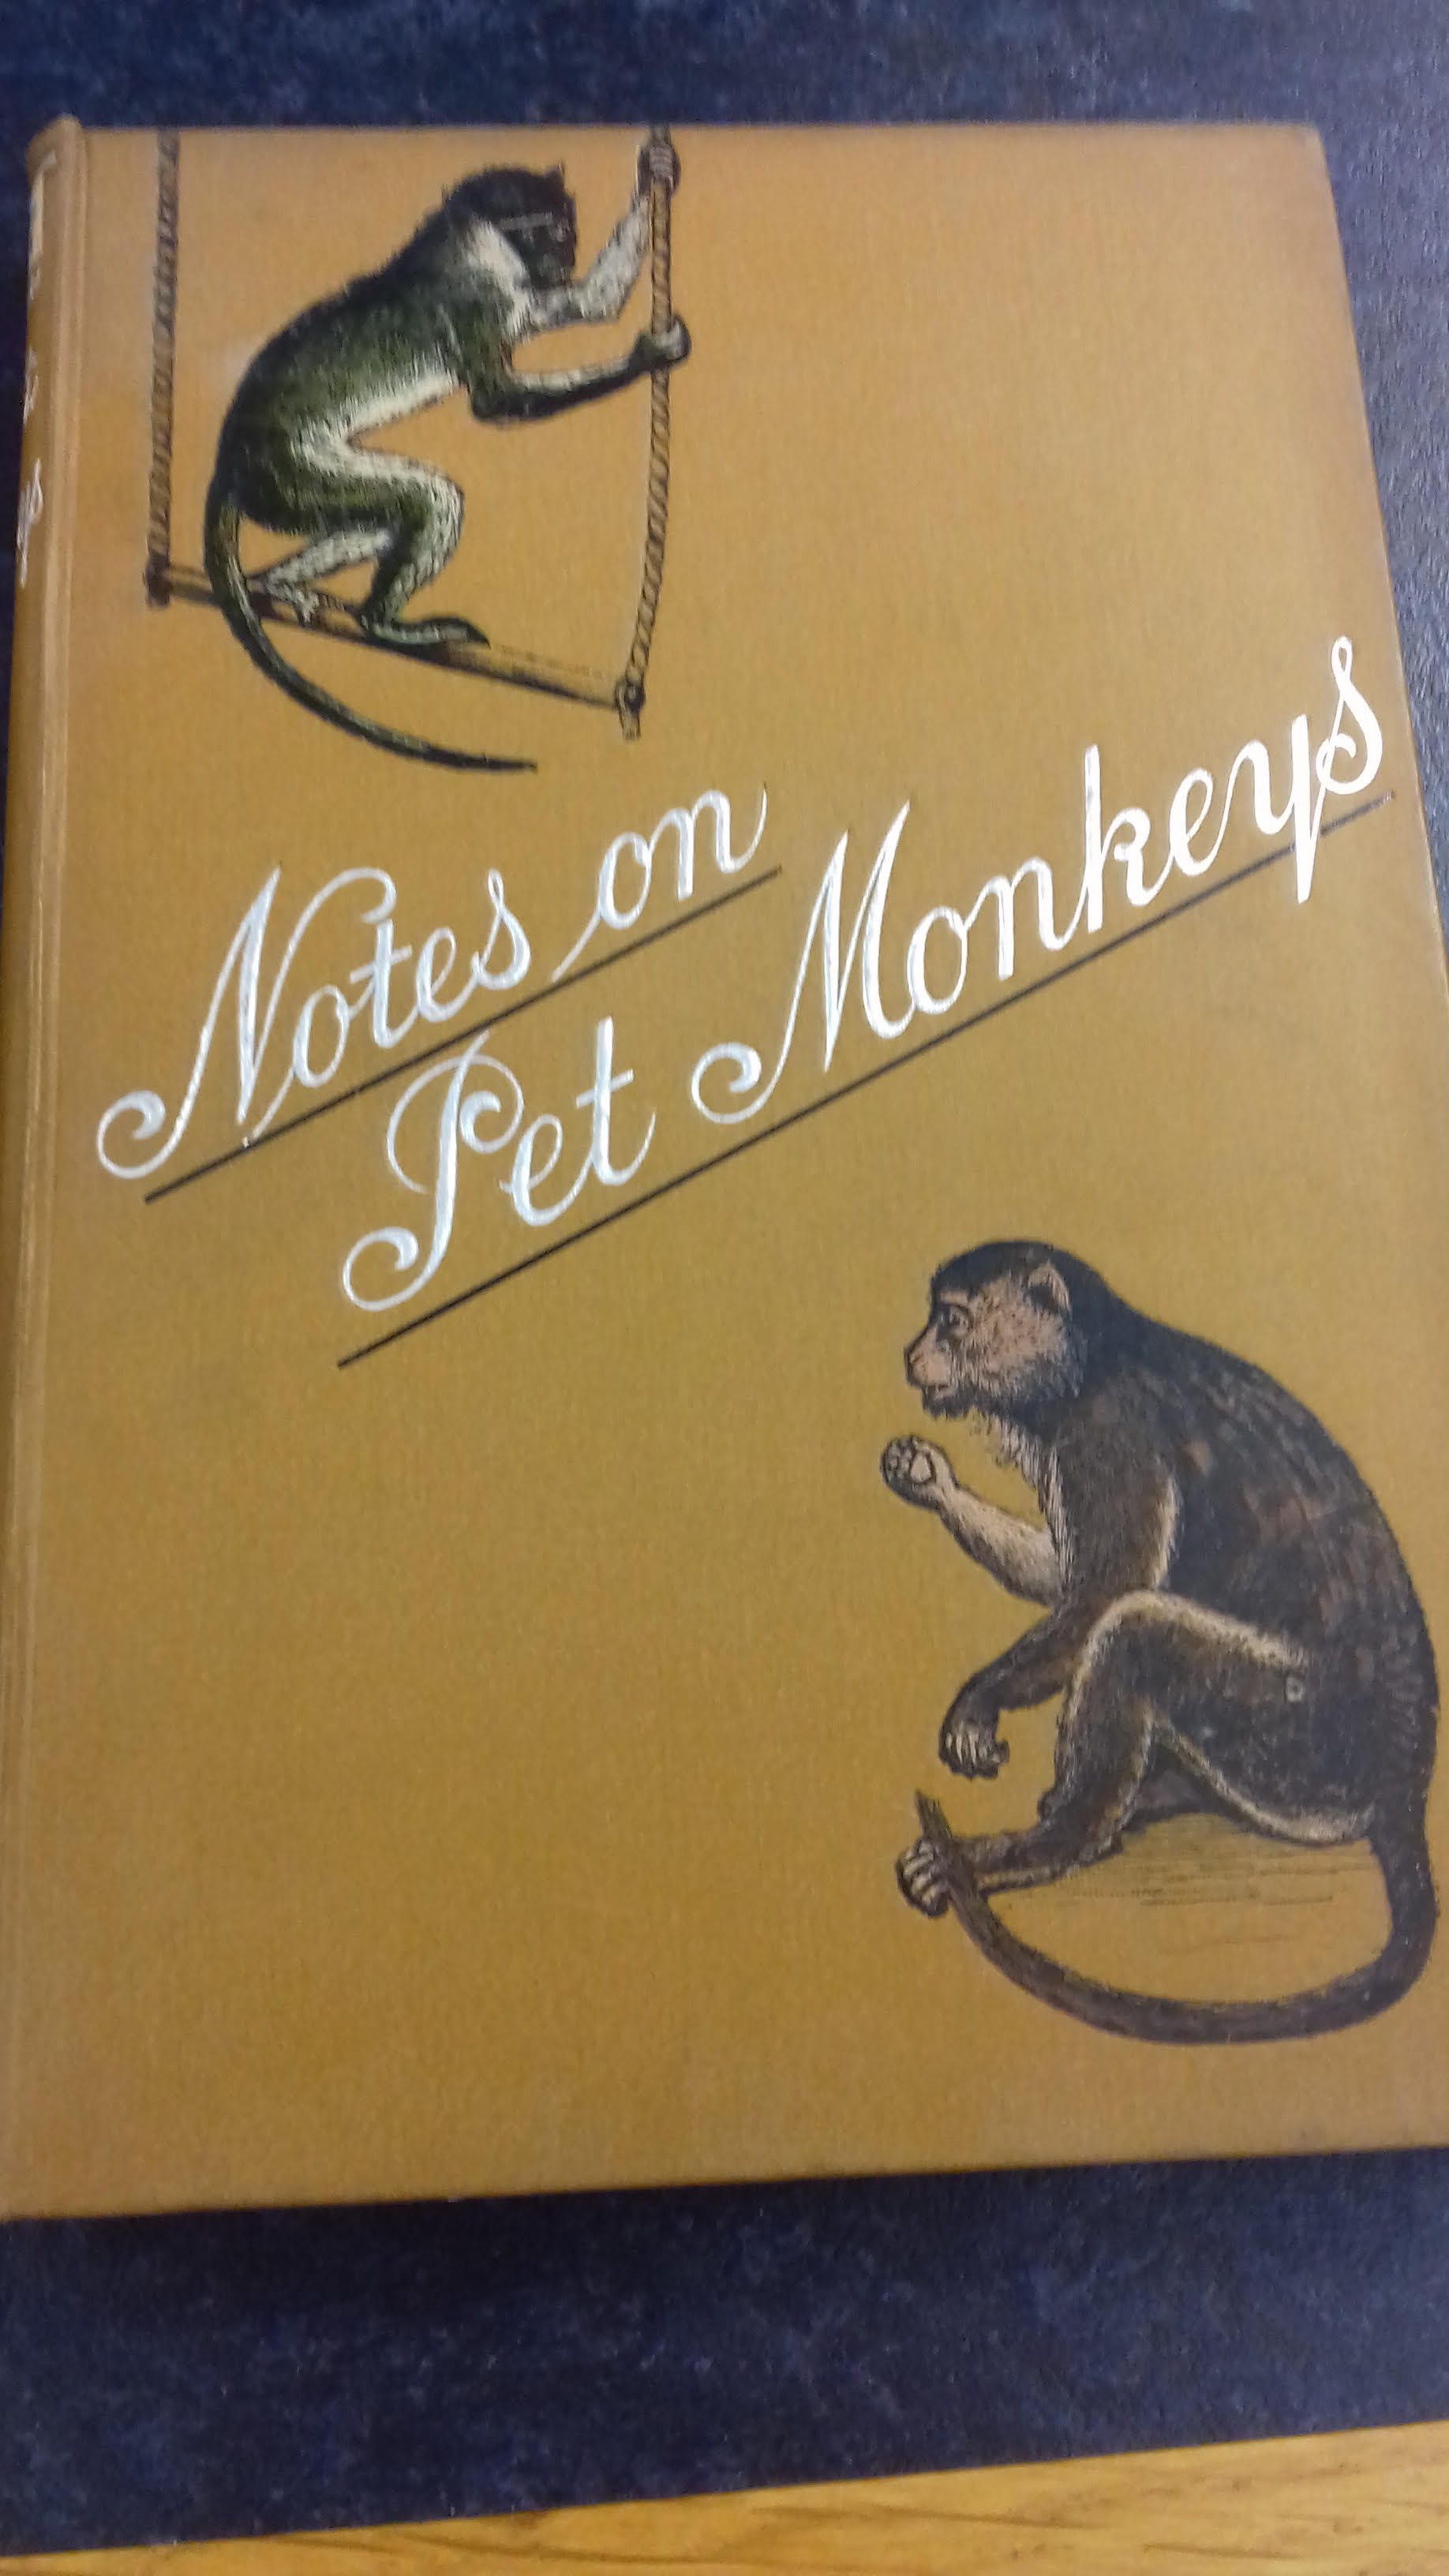 The cover of Notes on Pet Monkeys by Arthur Patterson (1888)